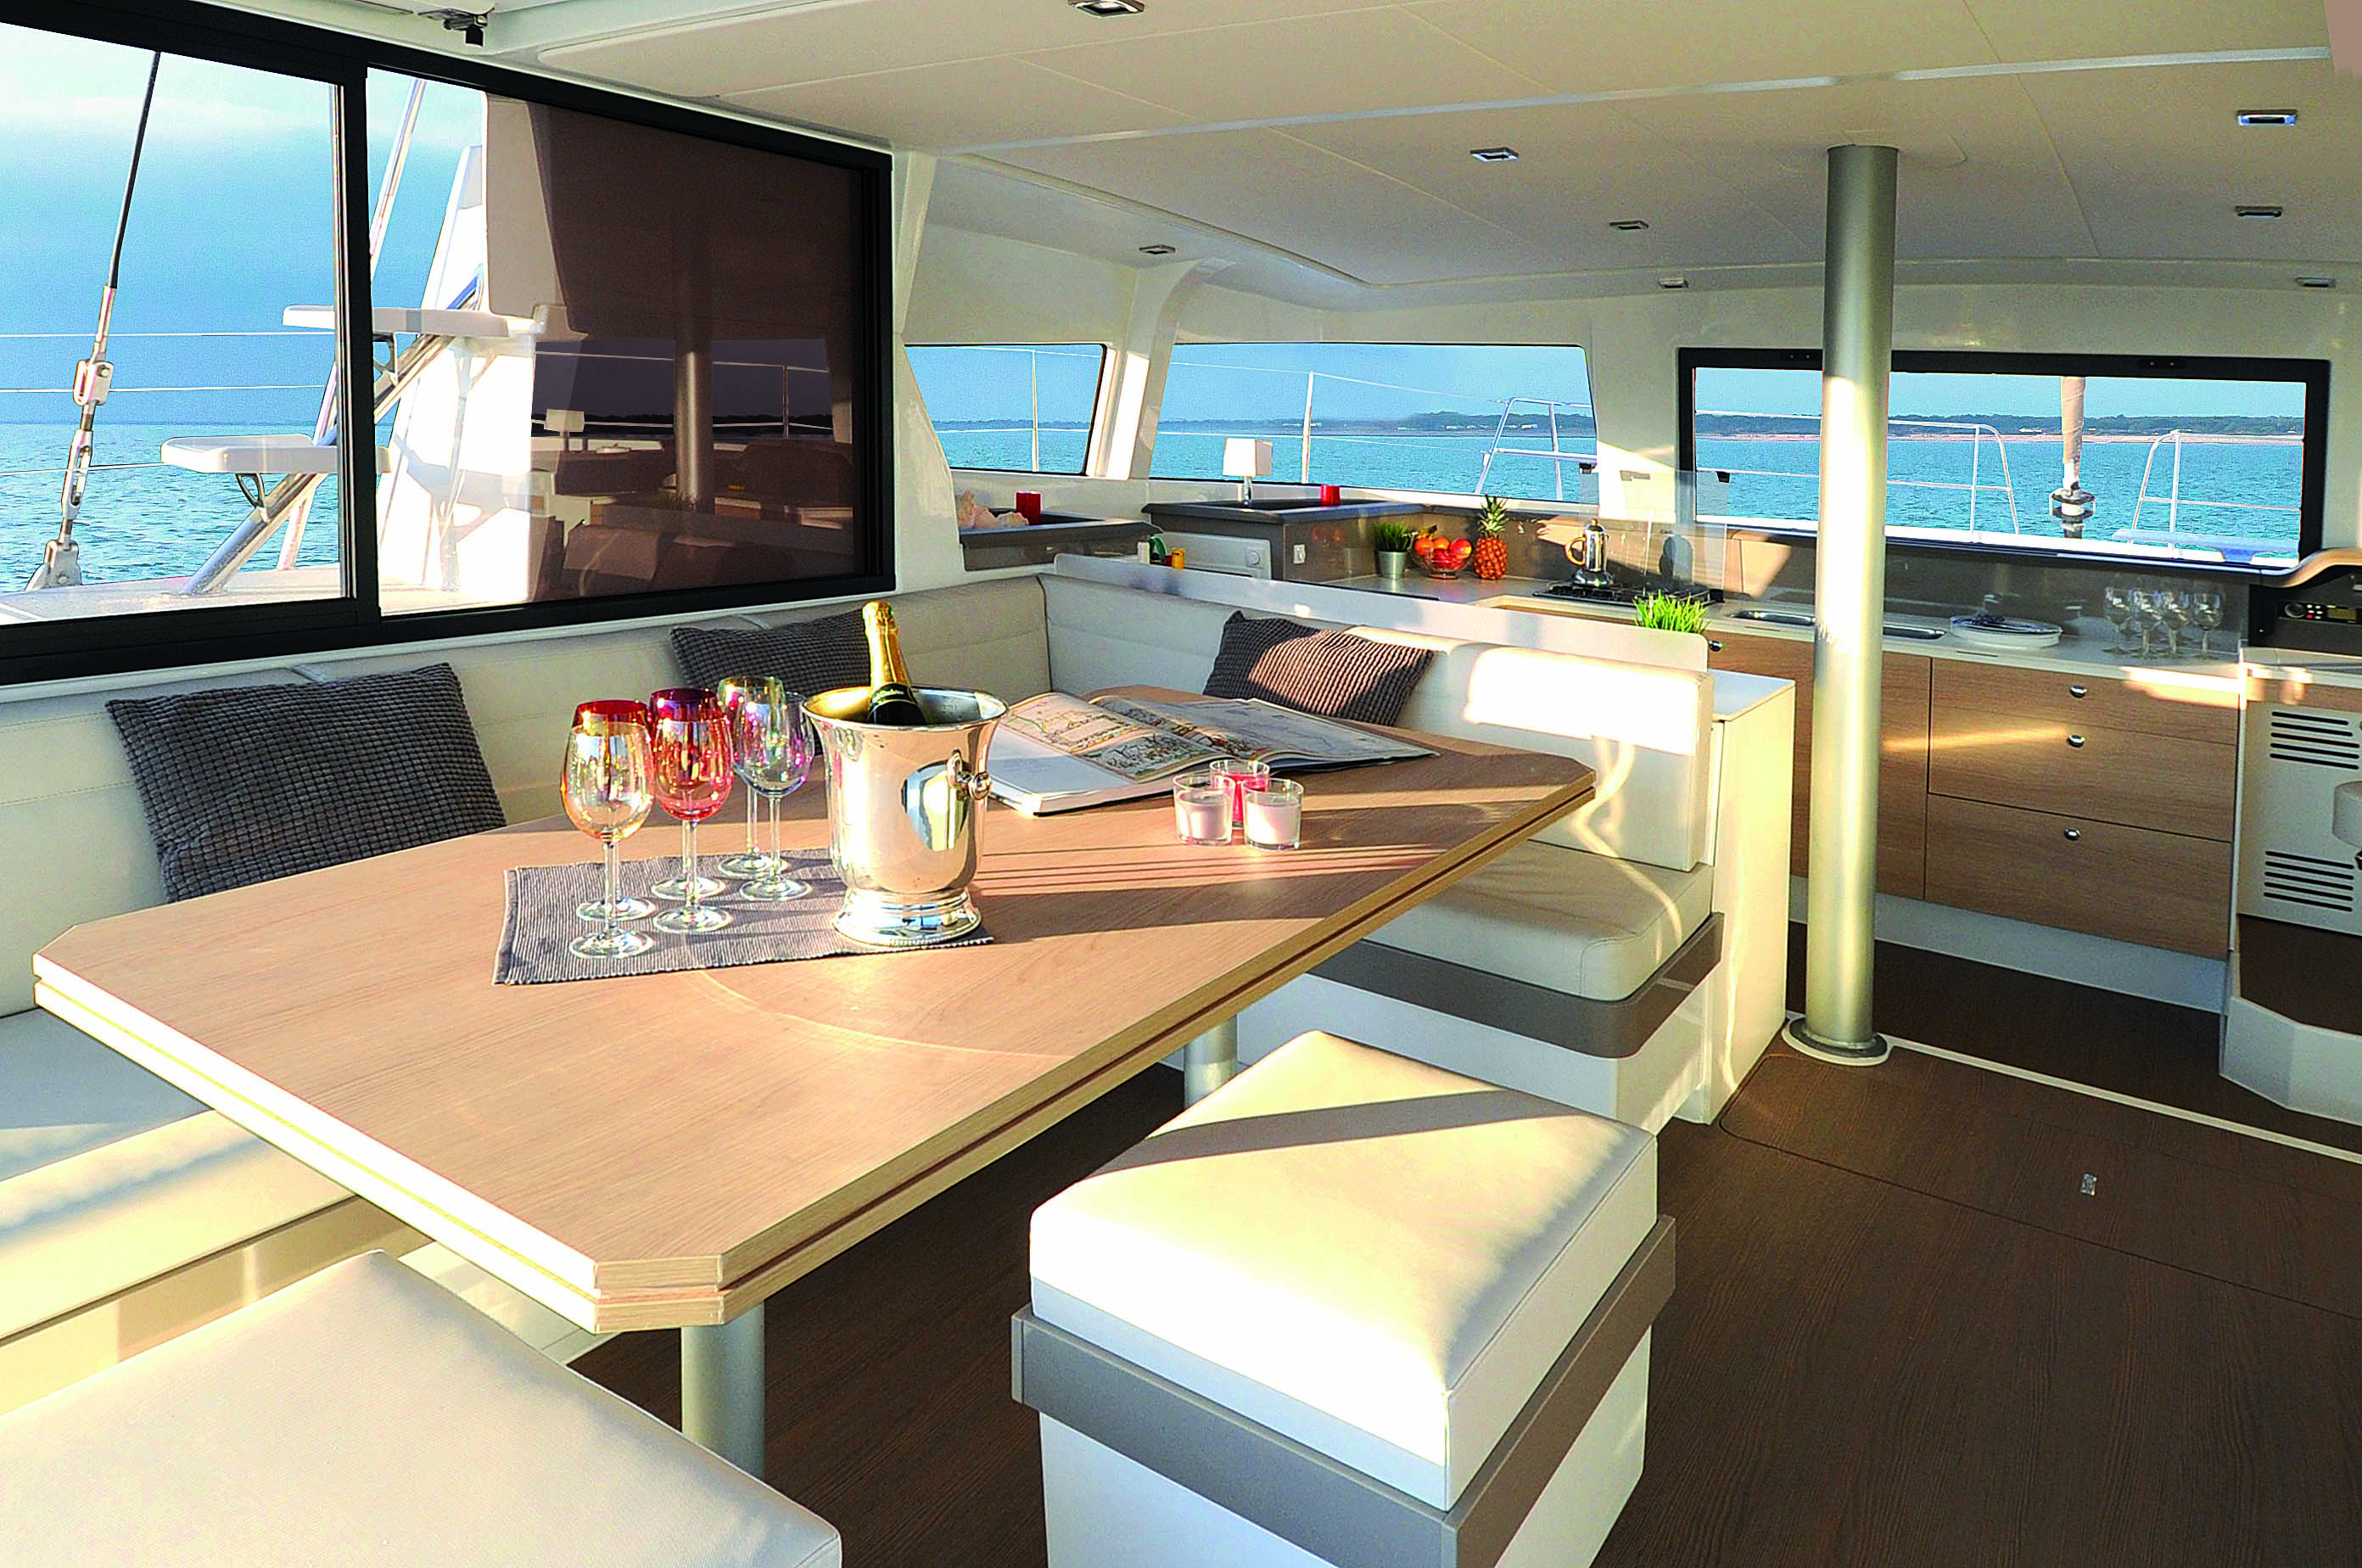 Catamaran BALI 4 3 - pictures, plans and features